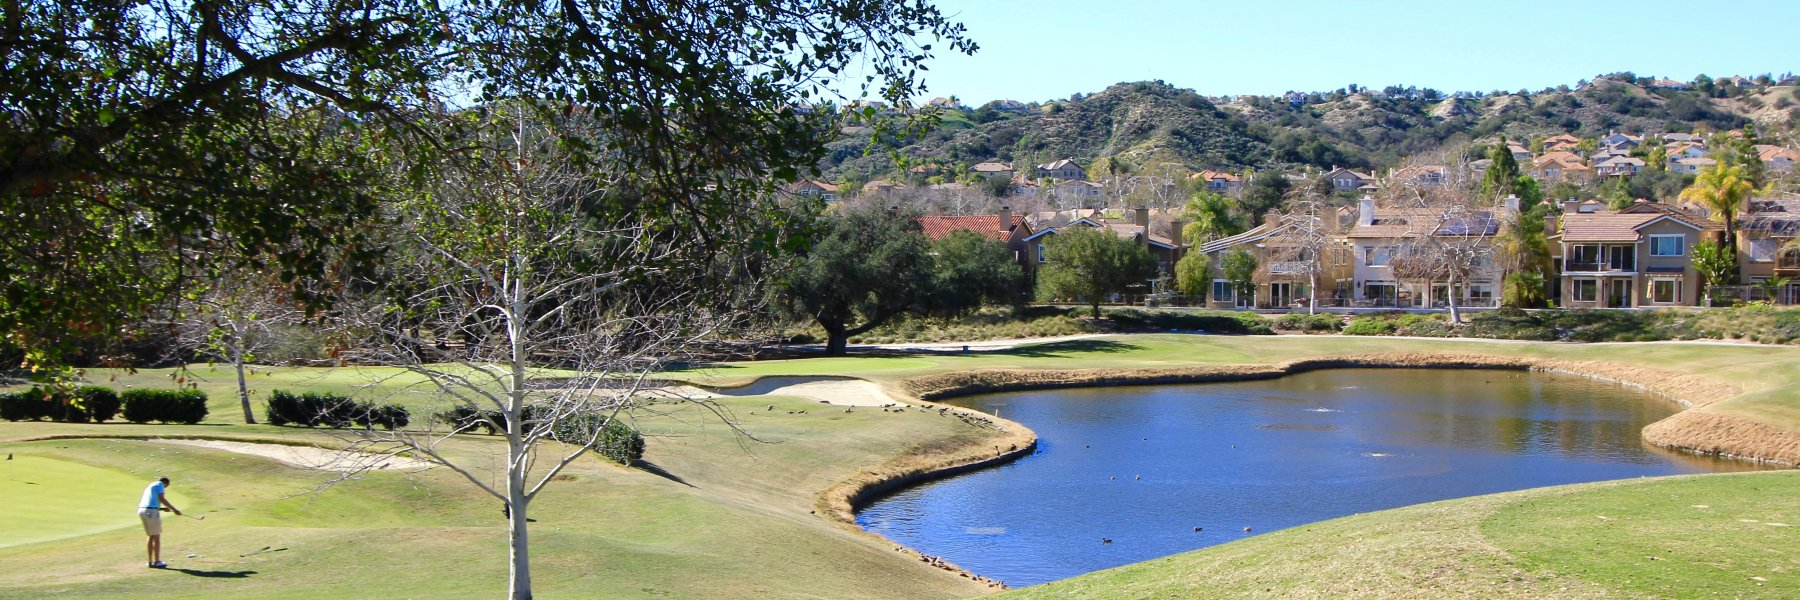 Andalusia is a community of homes in Coto de Caza California